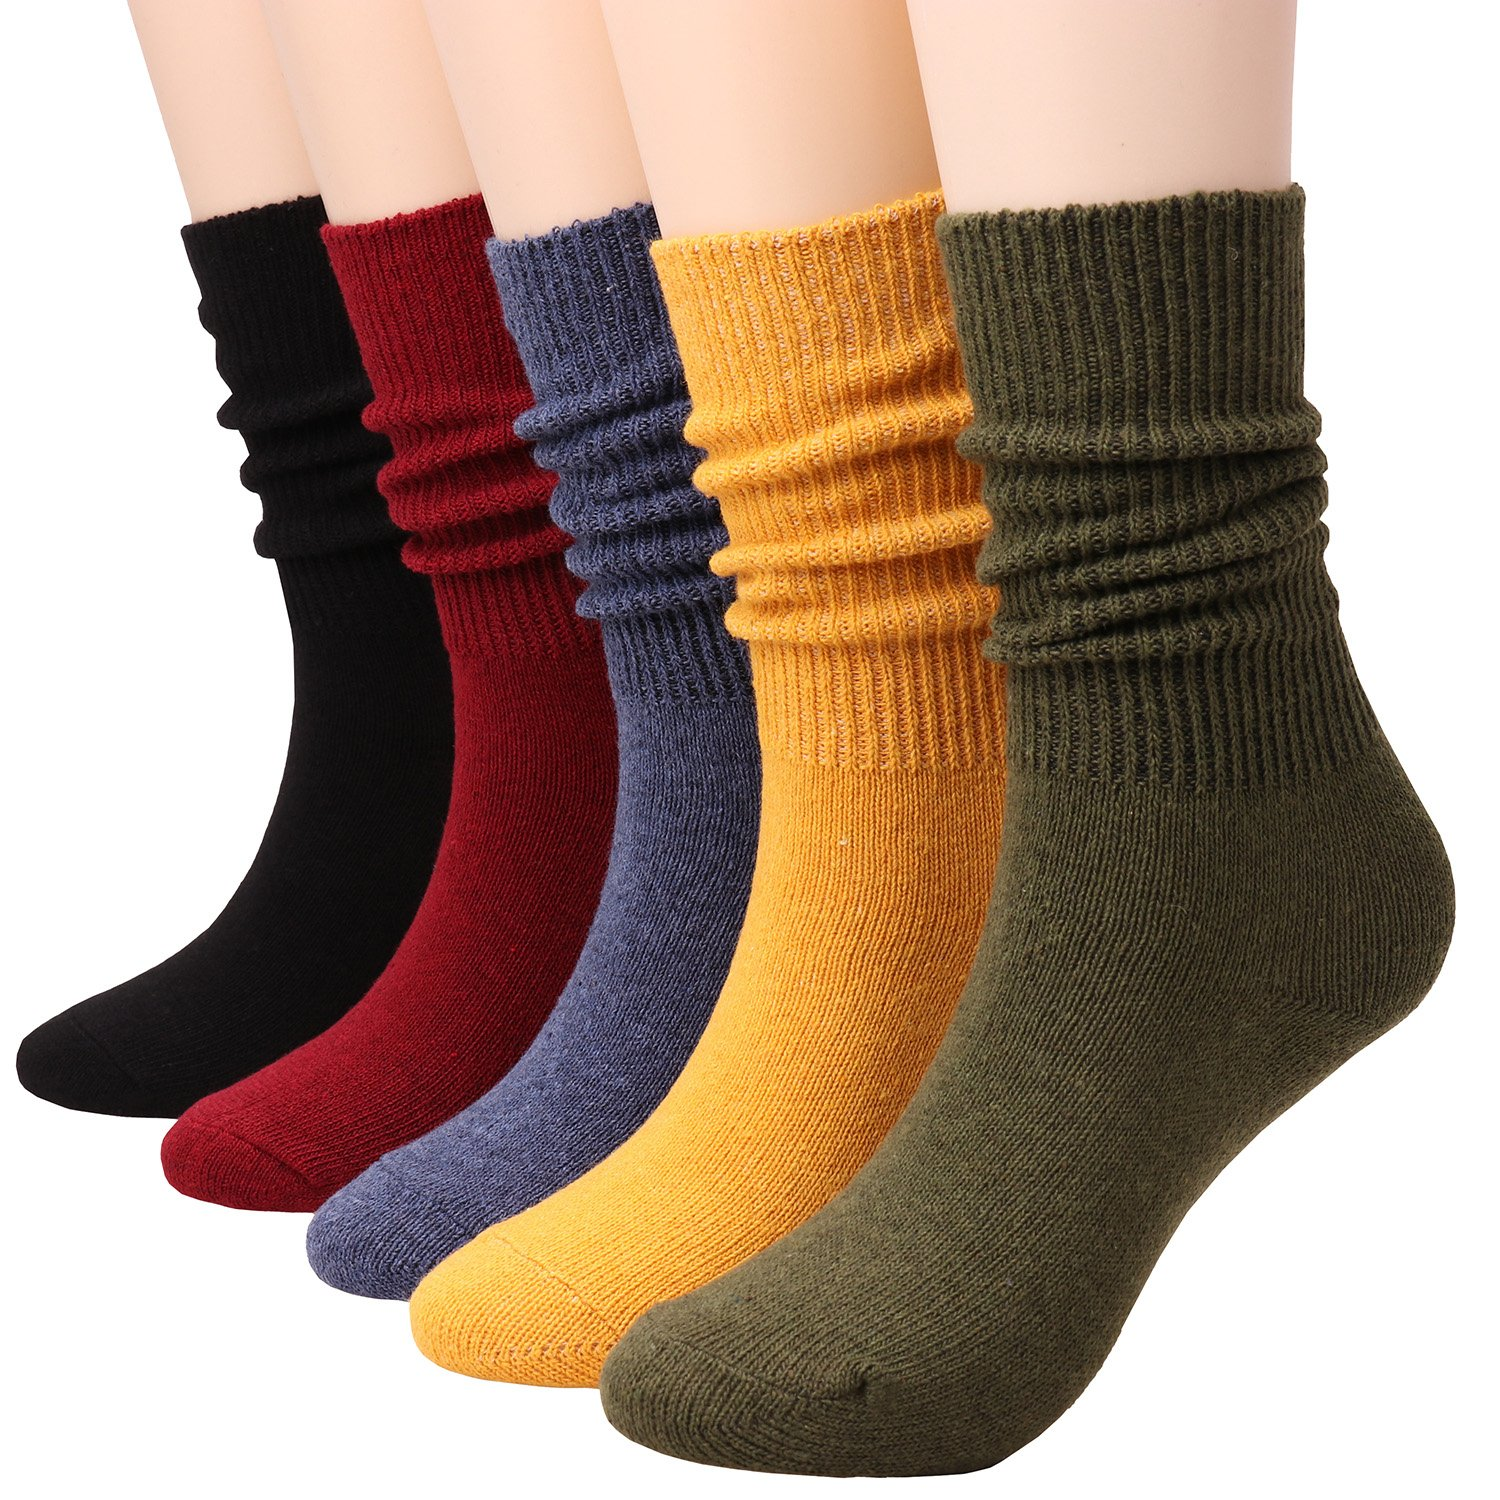 TINTAO 5 Pairs Women Comfortable Crew Soft Slouch Knit Cotton Socks,5-10 W81 (Solid Color)